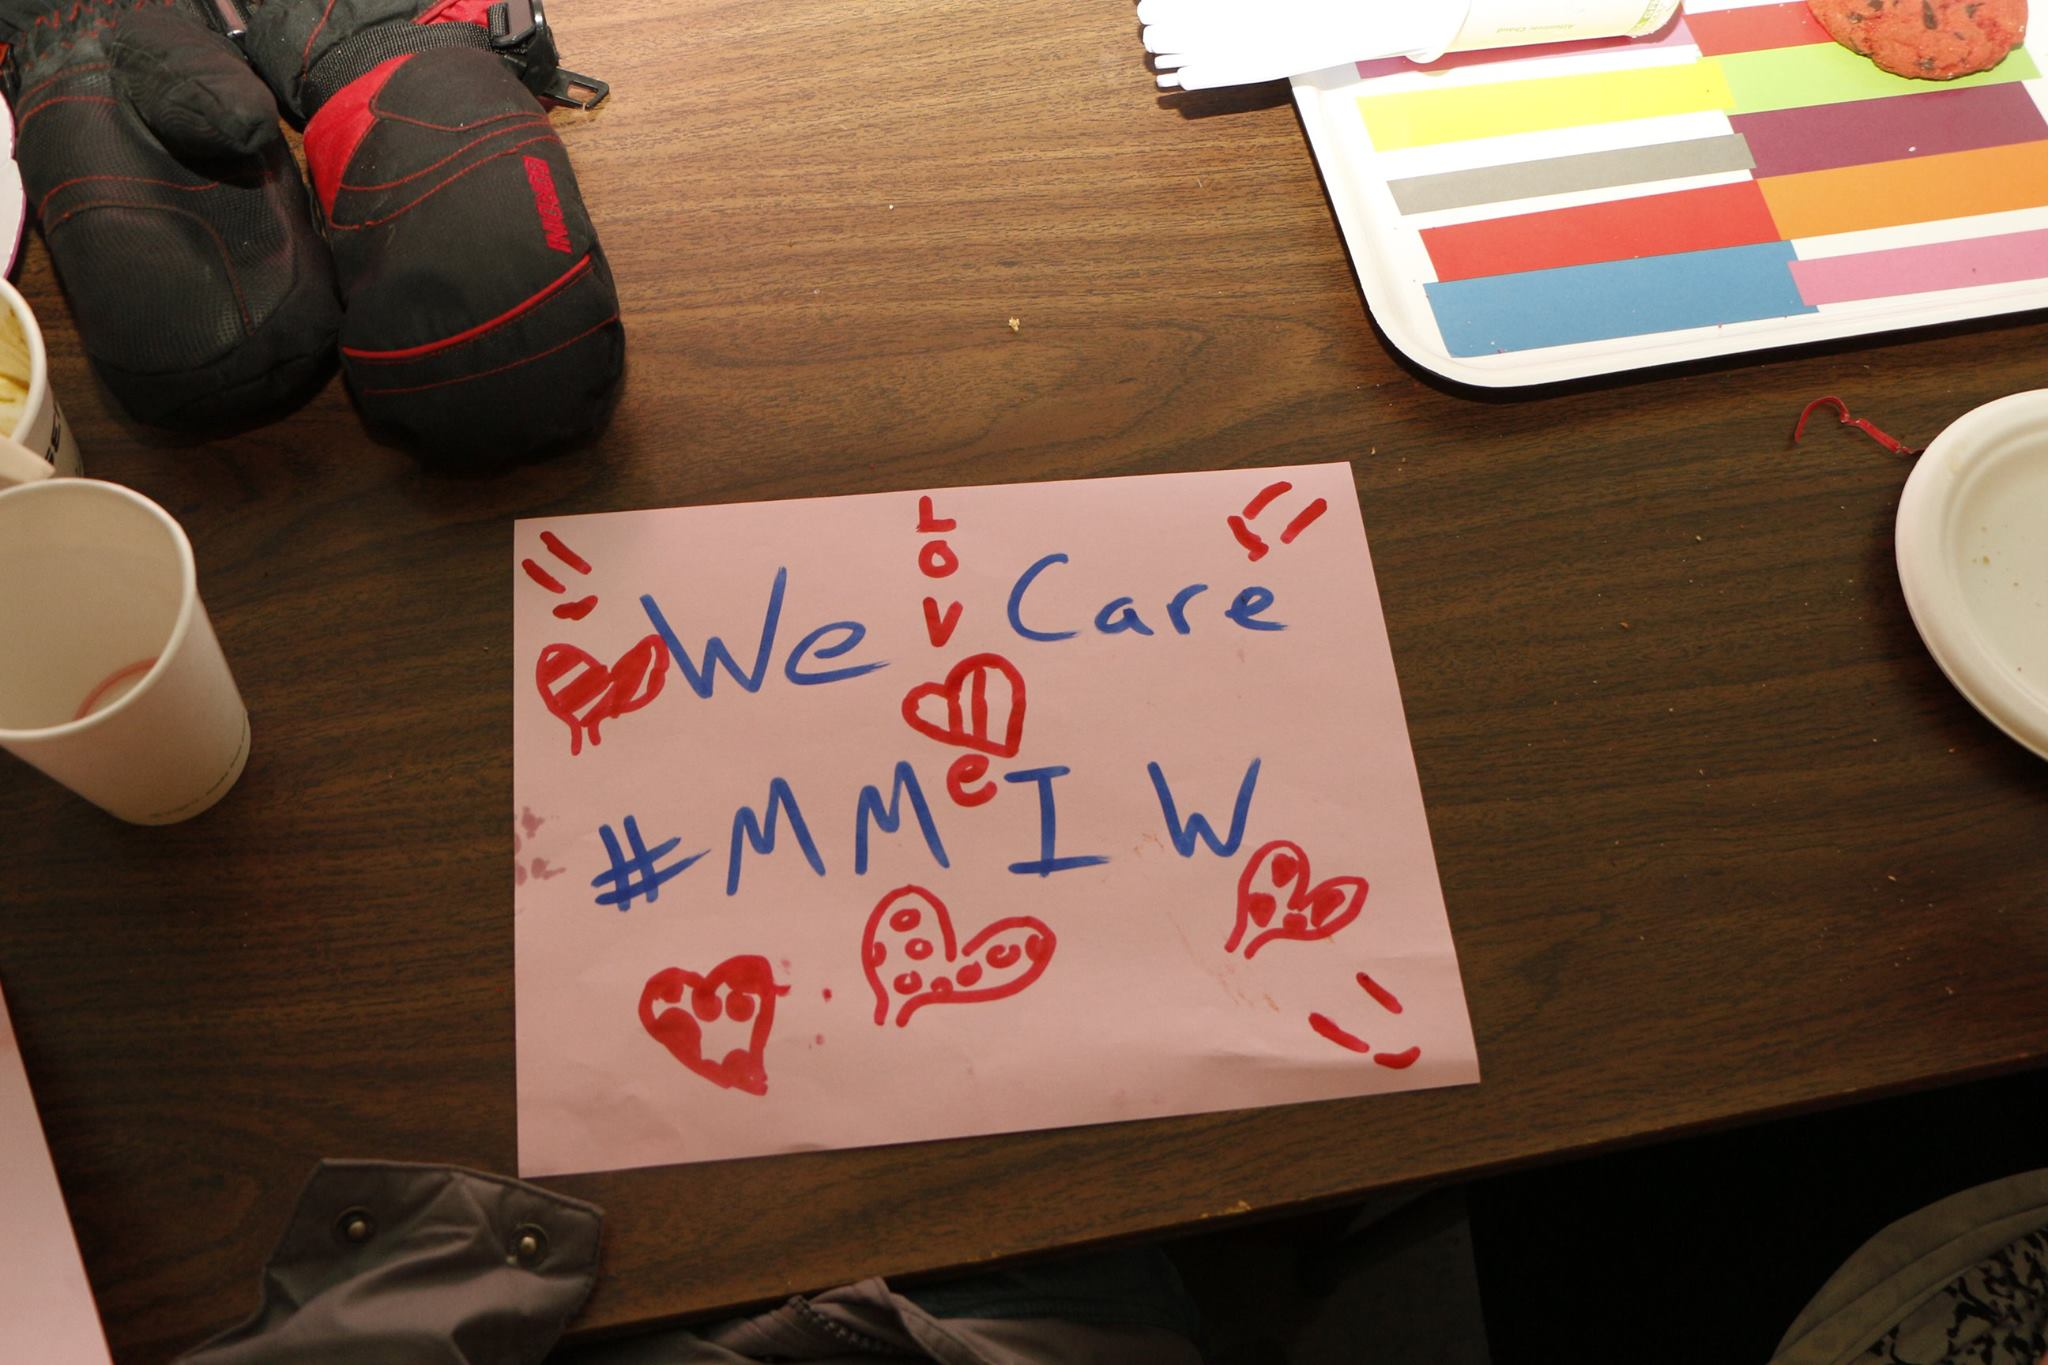 We Care Campaign MMIWG